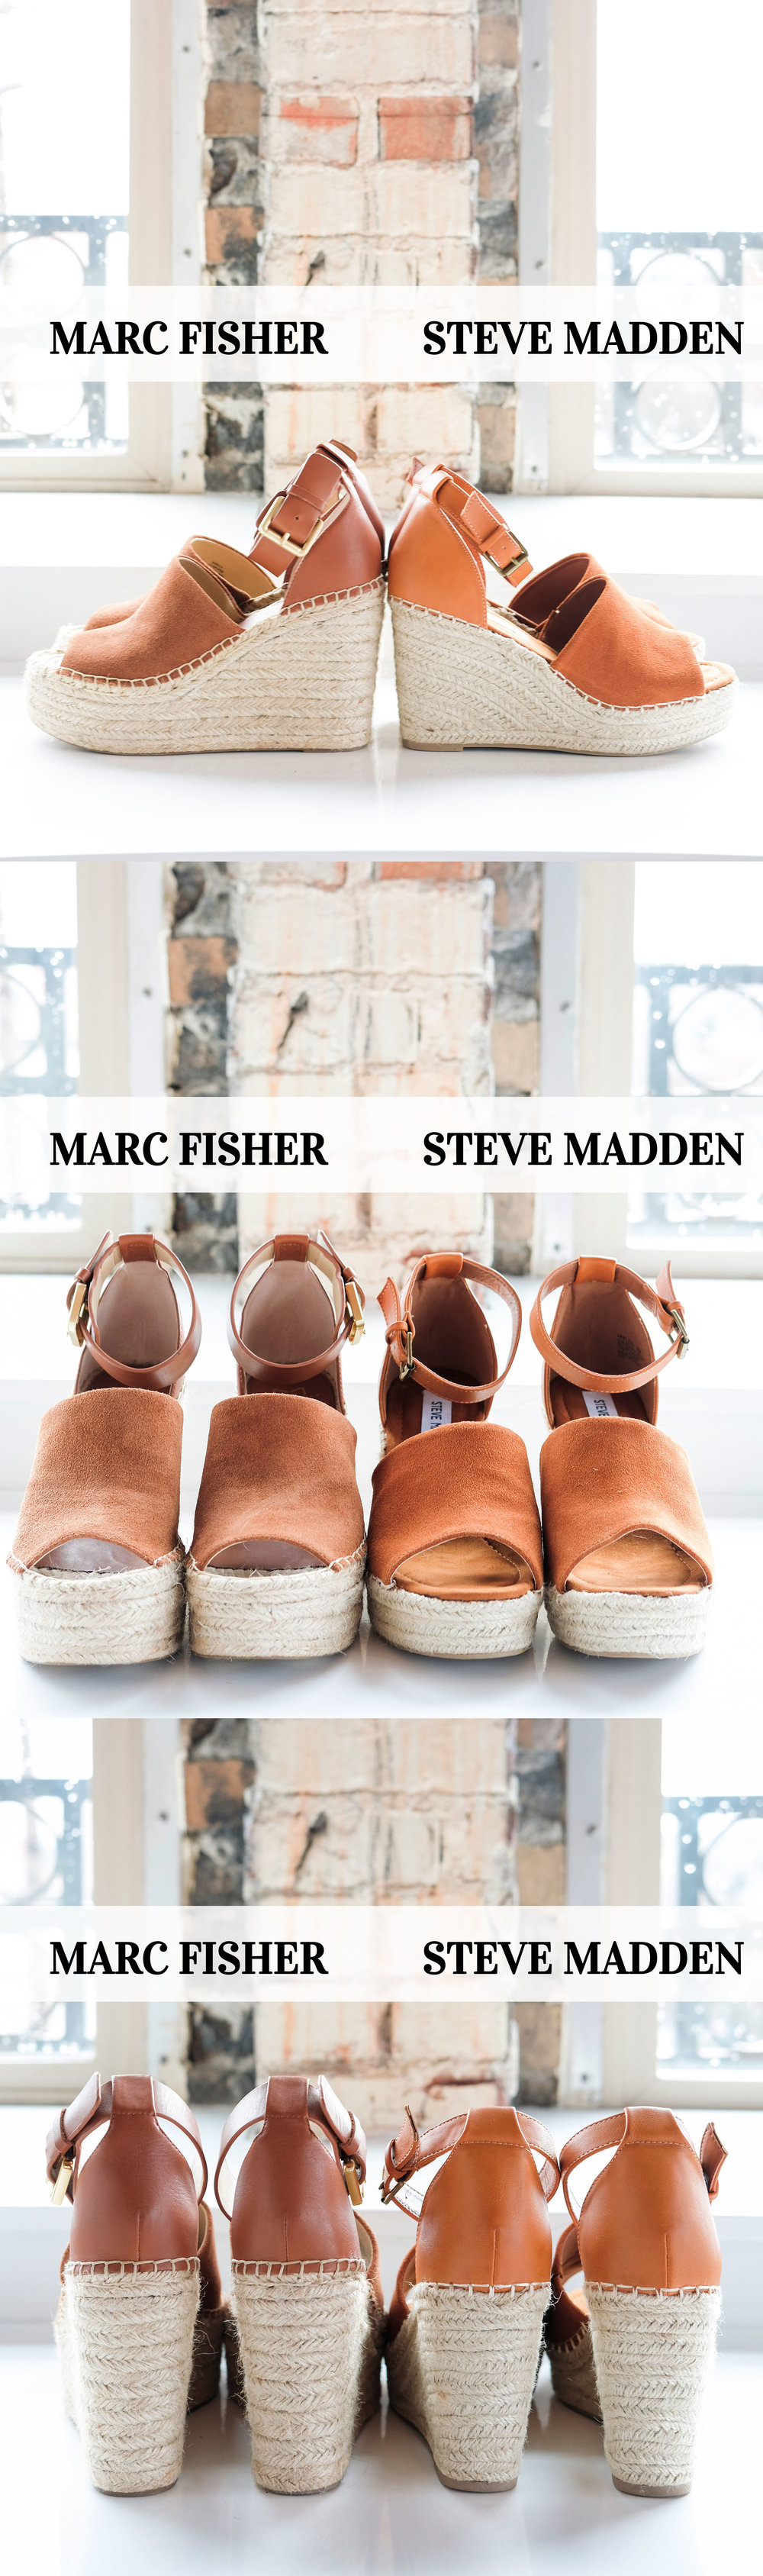 2b0840df11a MARC FISHER 'ADALYN' DUPES BY STEVE MADDEN FOR $60! | Let's Get Some ...